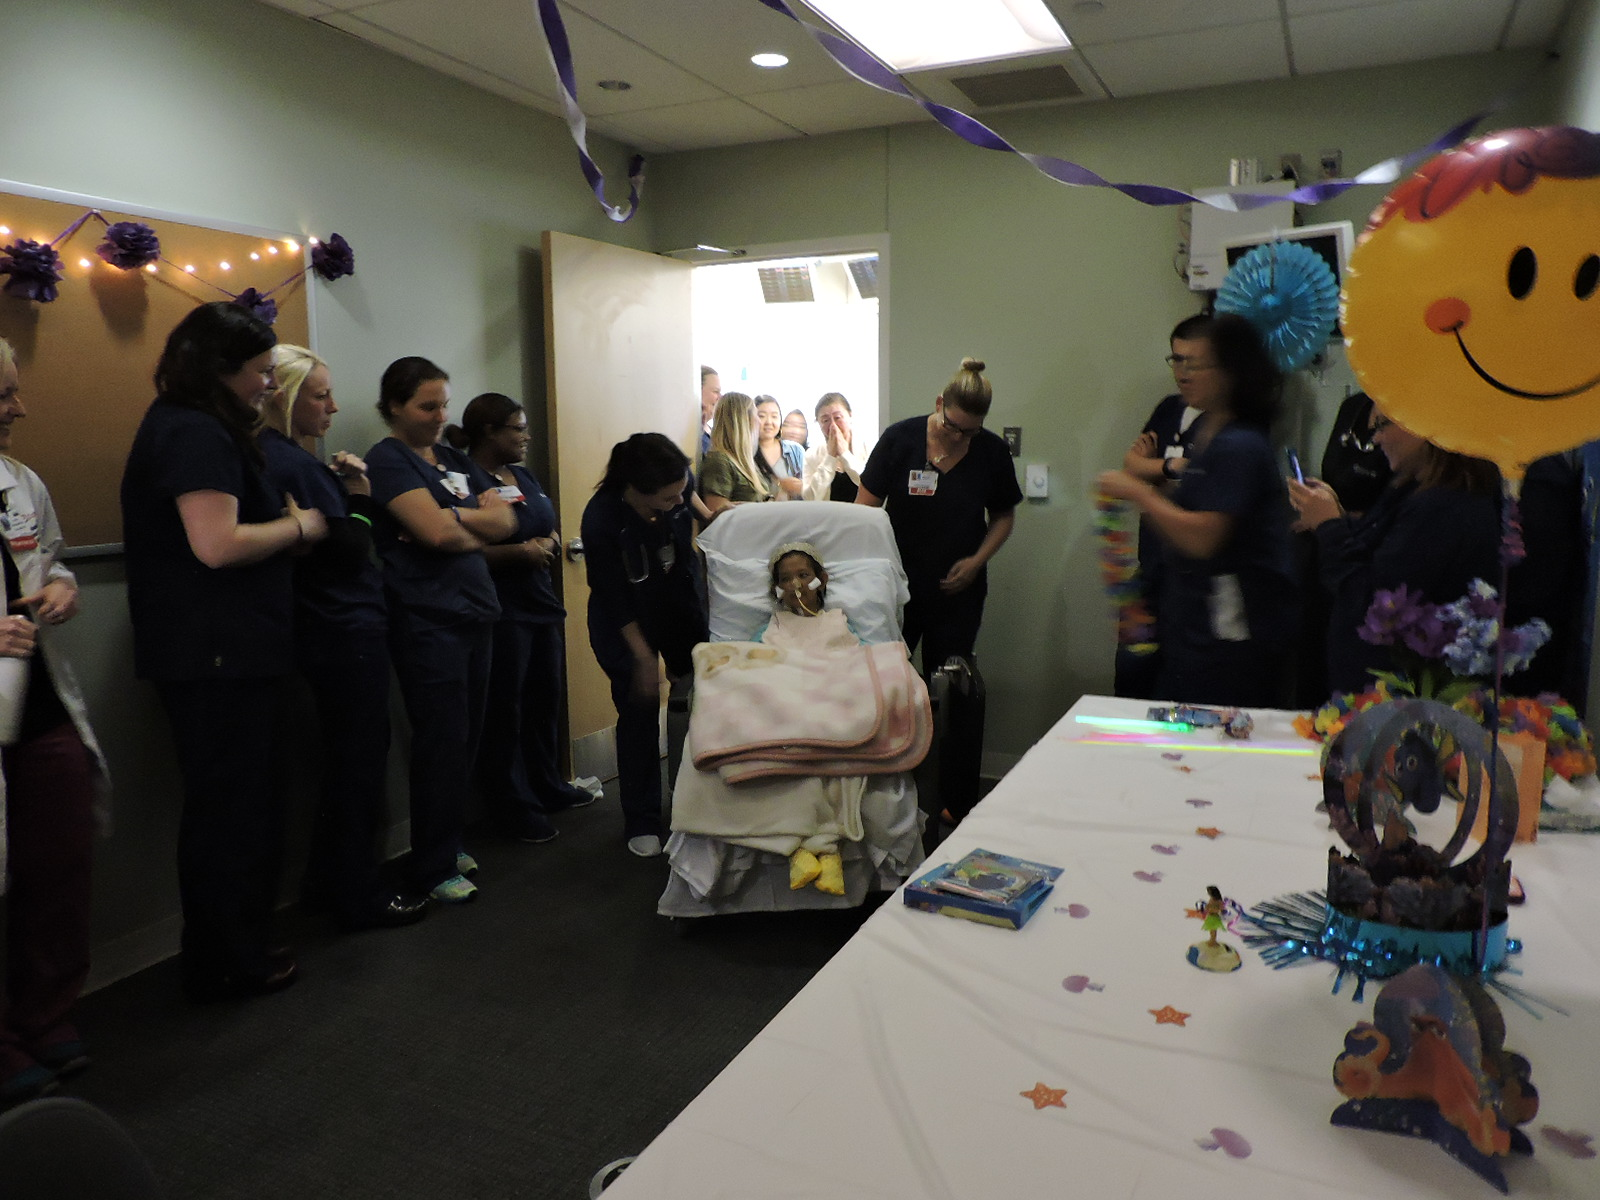 Cooper Brings Dance Party to Patient